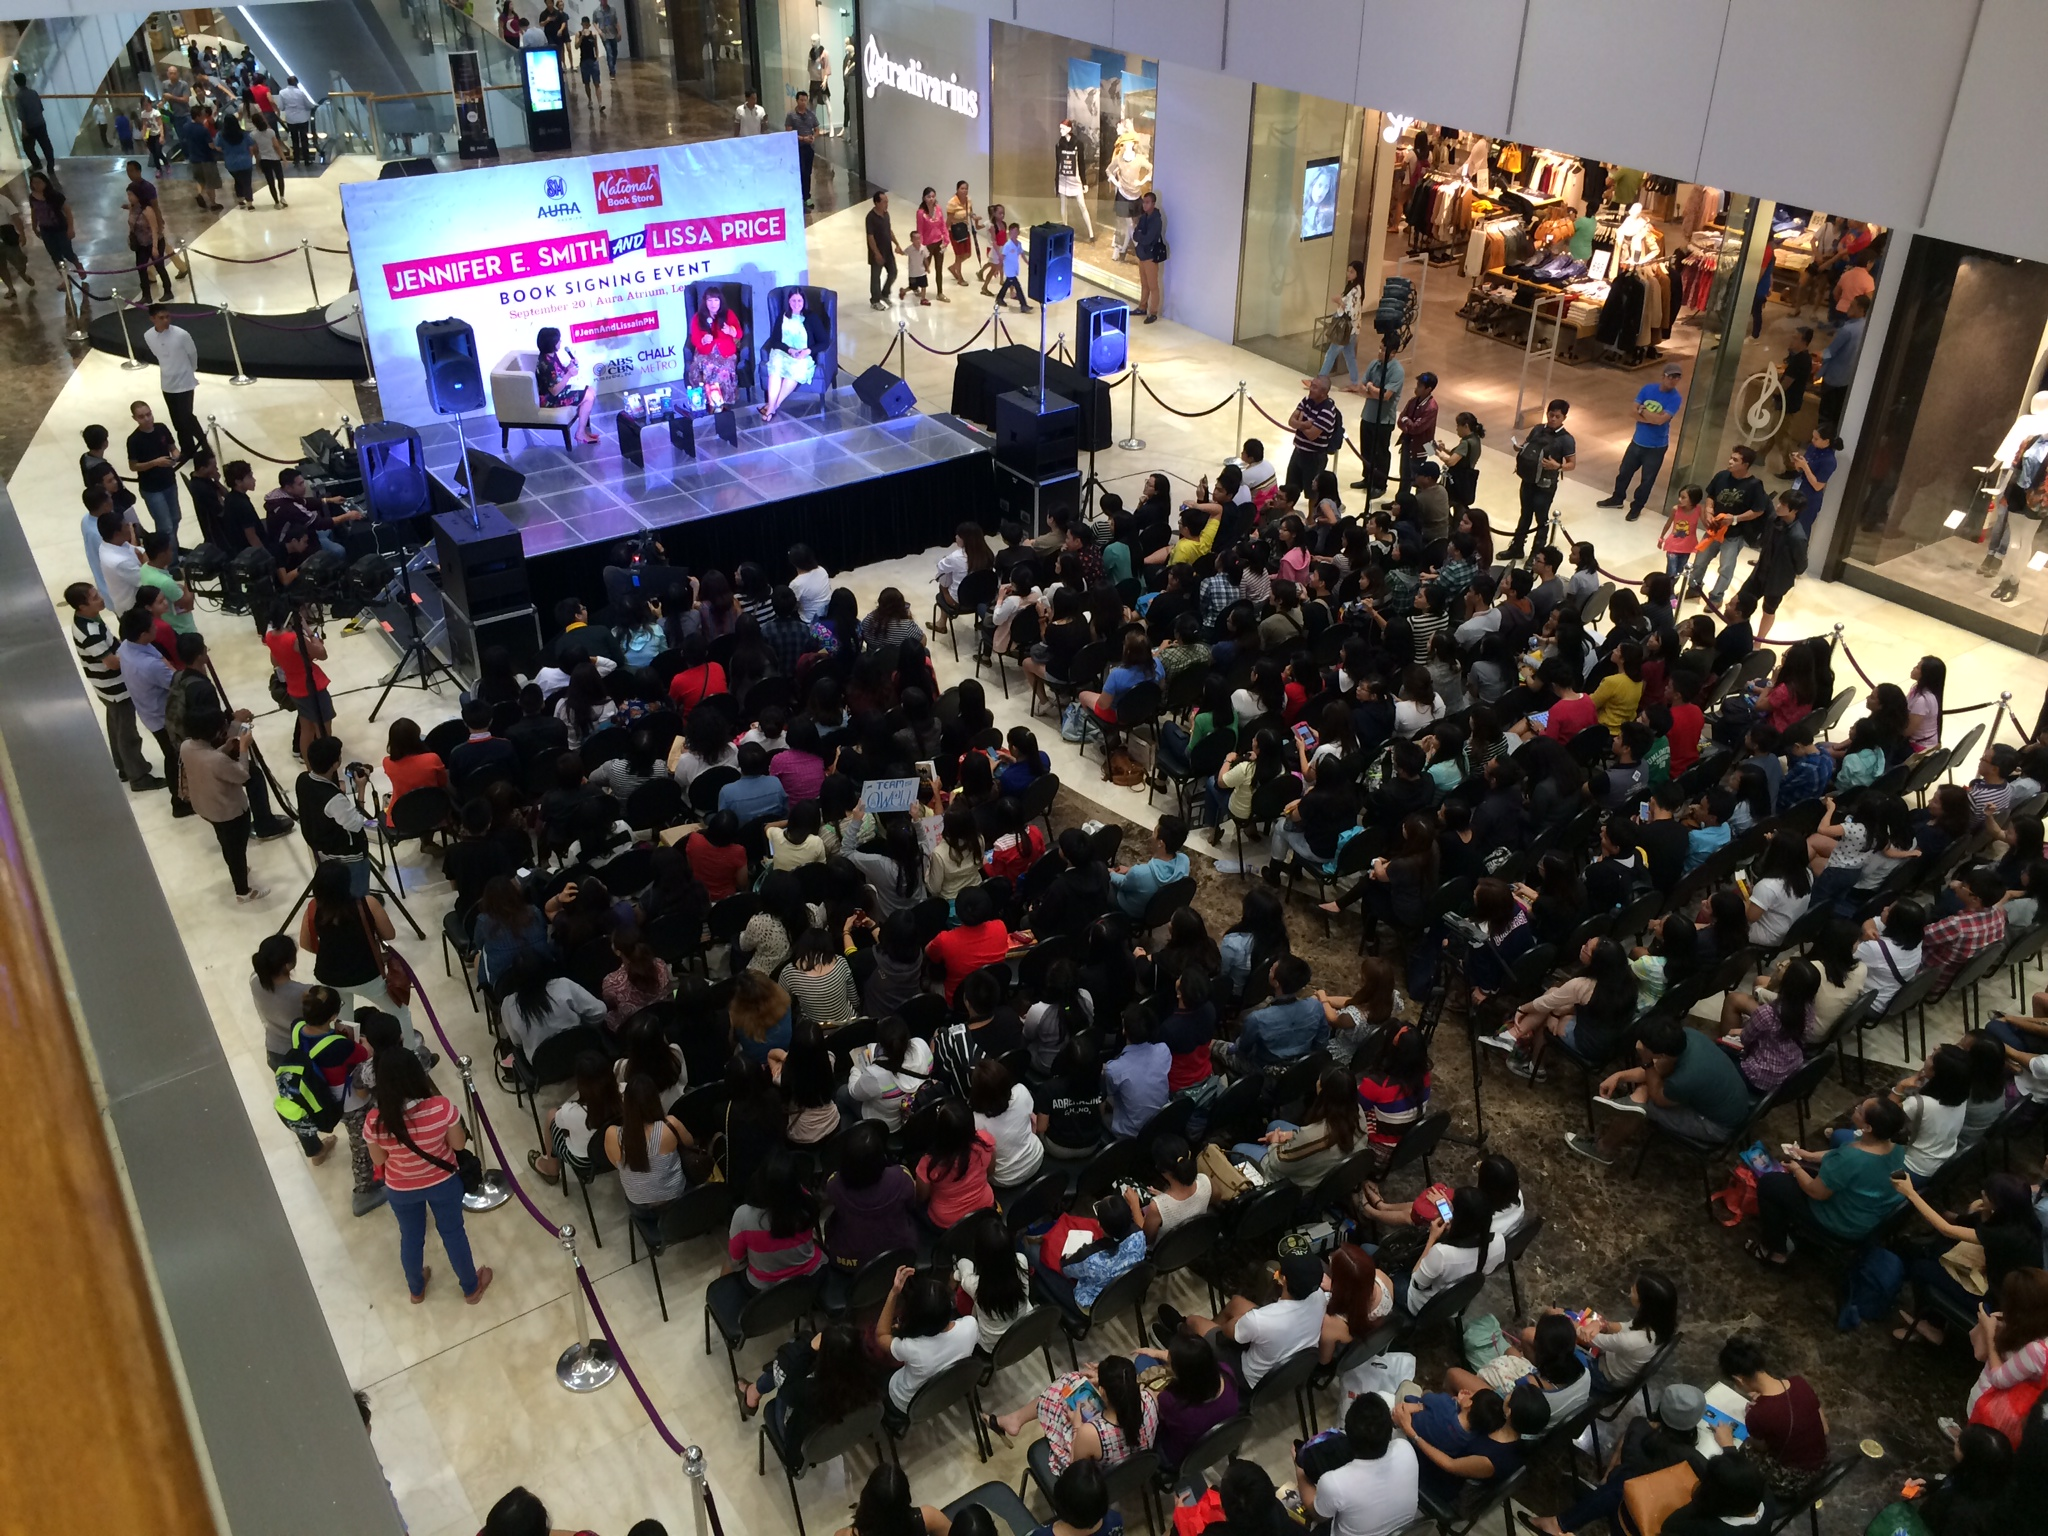 Mall crowd view